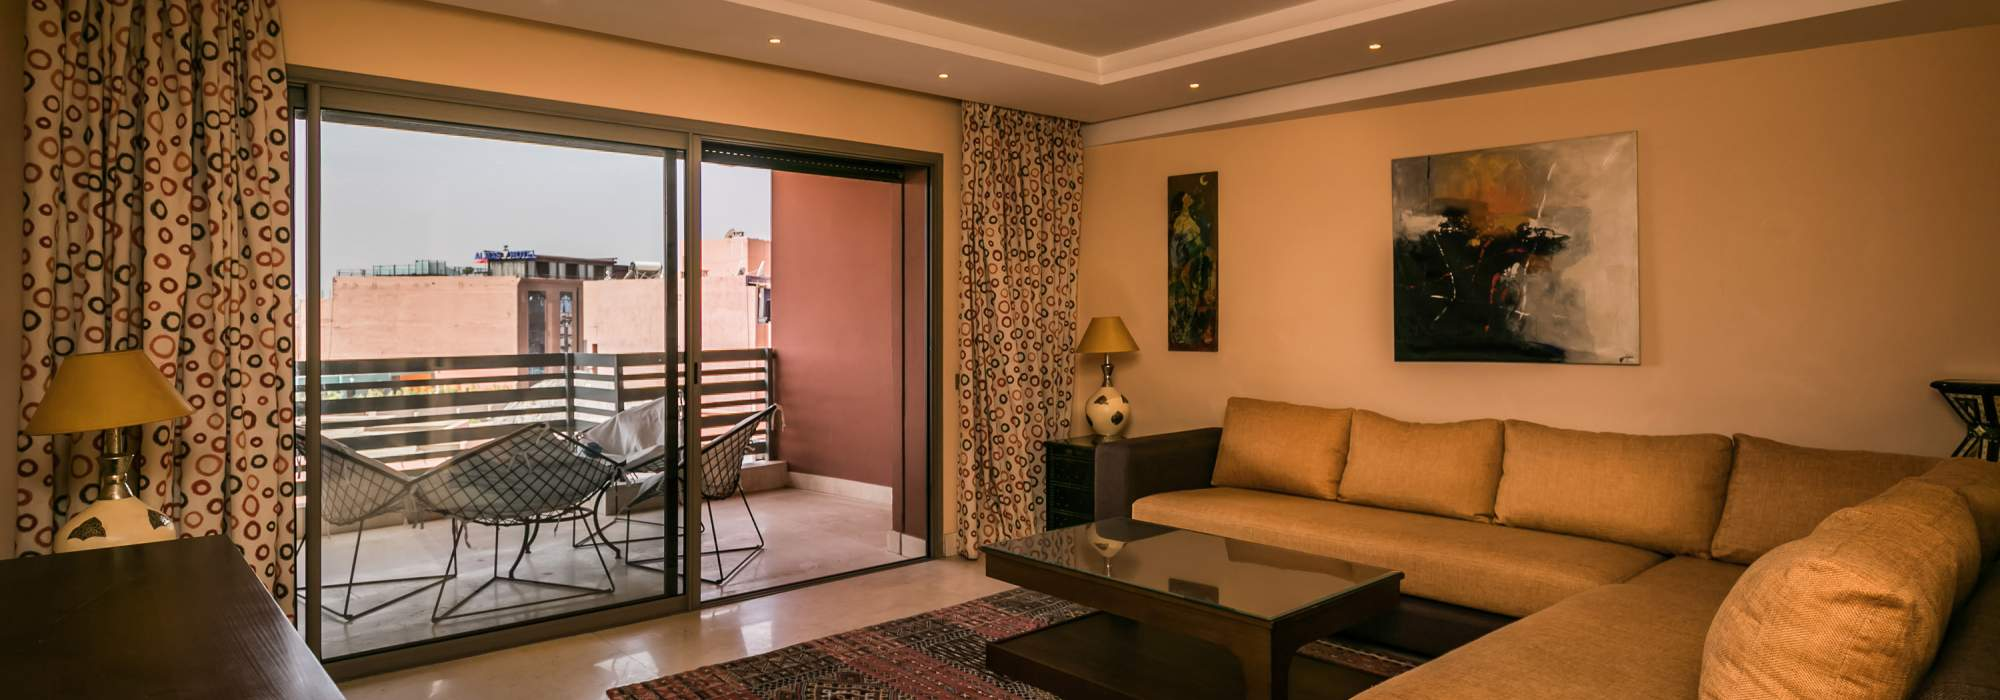 contemporain appartement a vendre centre ville marrakech